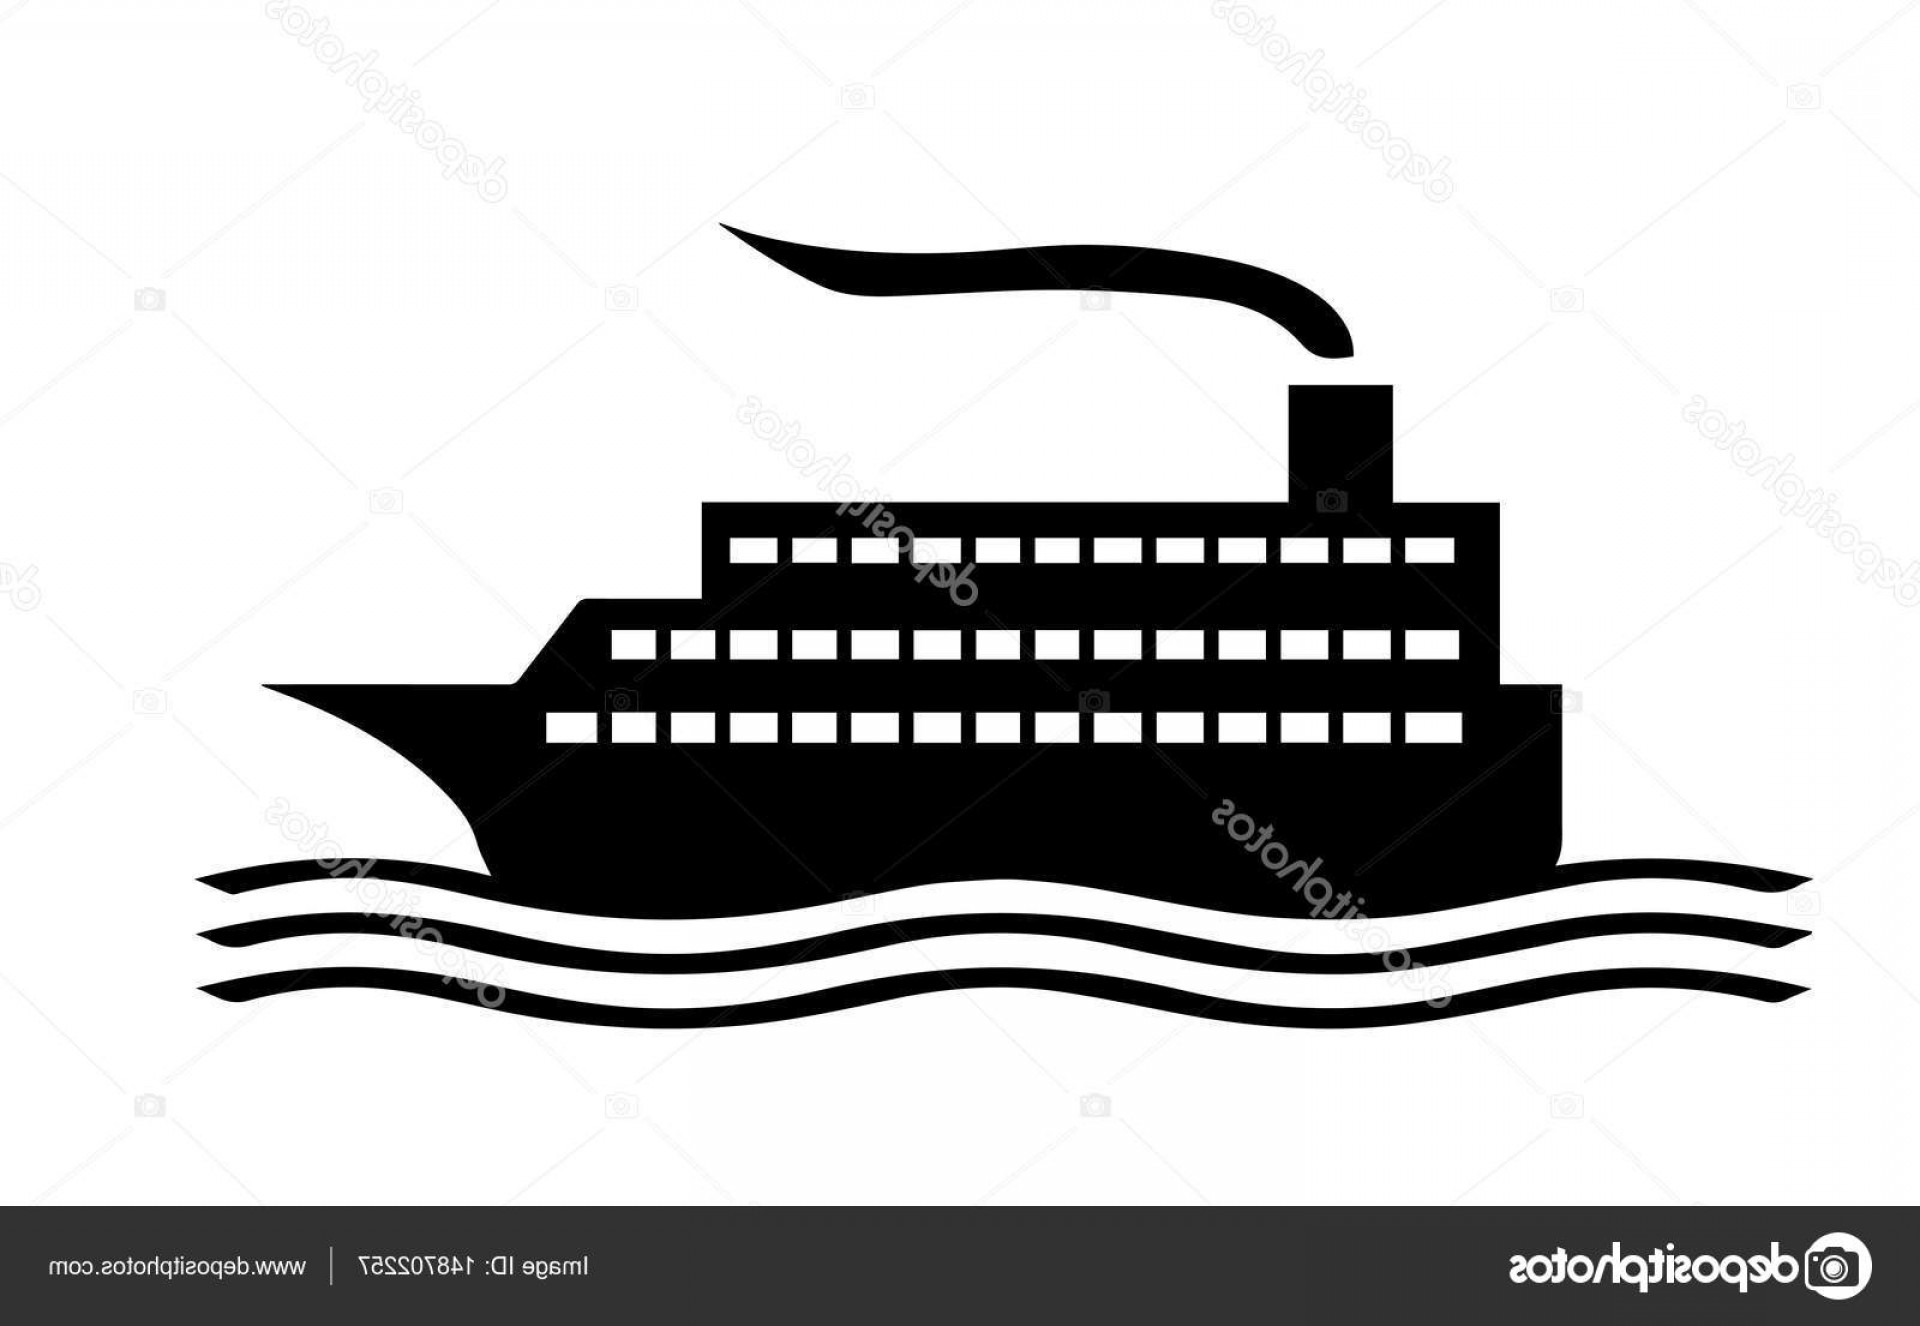 Waves With Cruise Ship Silhouette Vector: Stock Illustration Cruise Ship Silhouette Vector